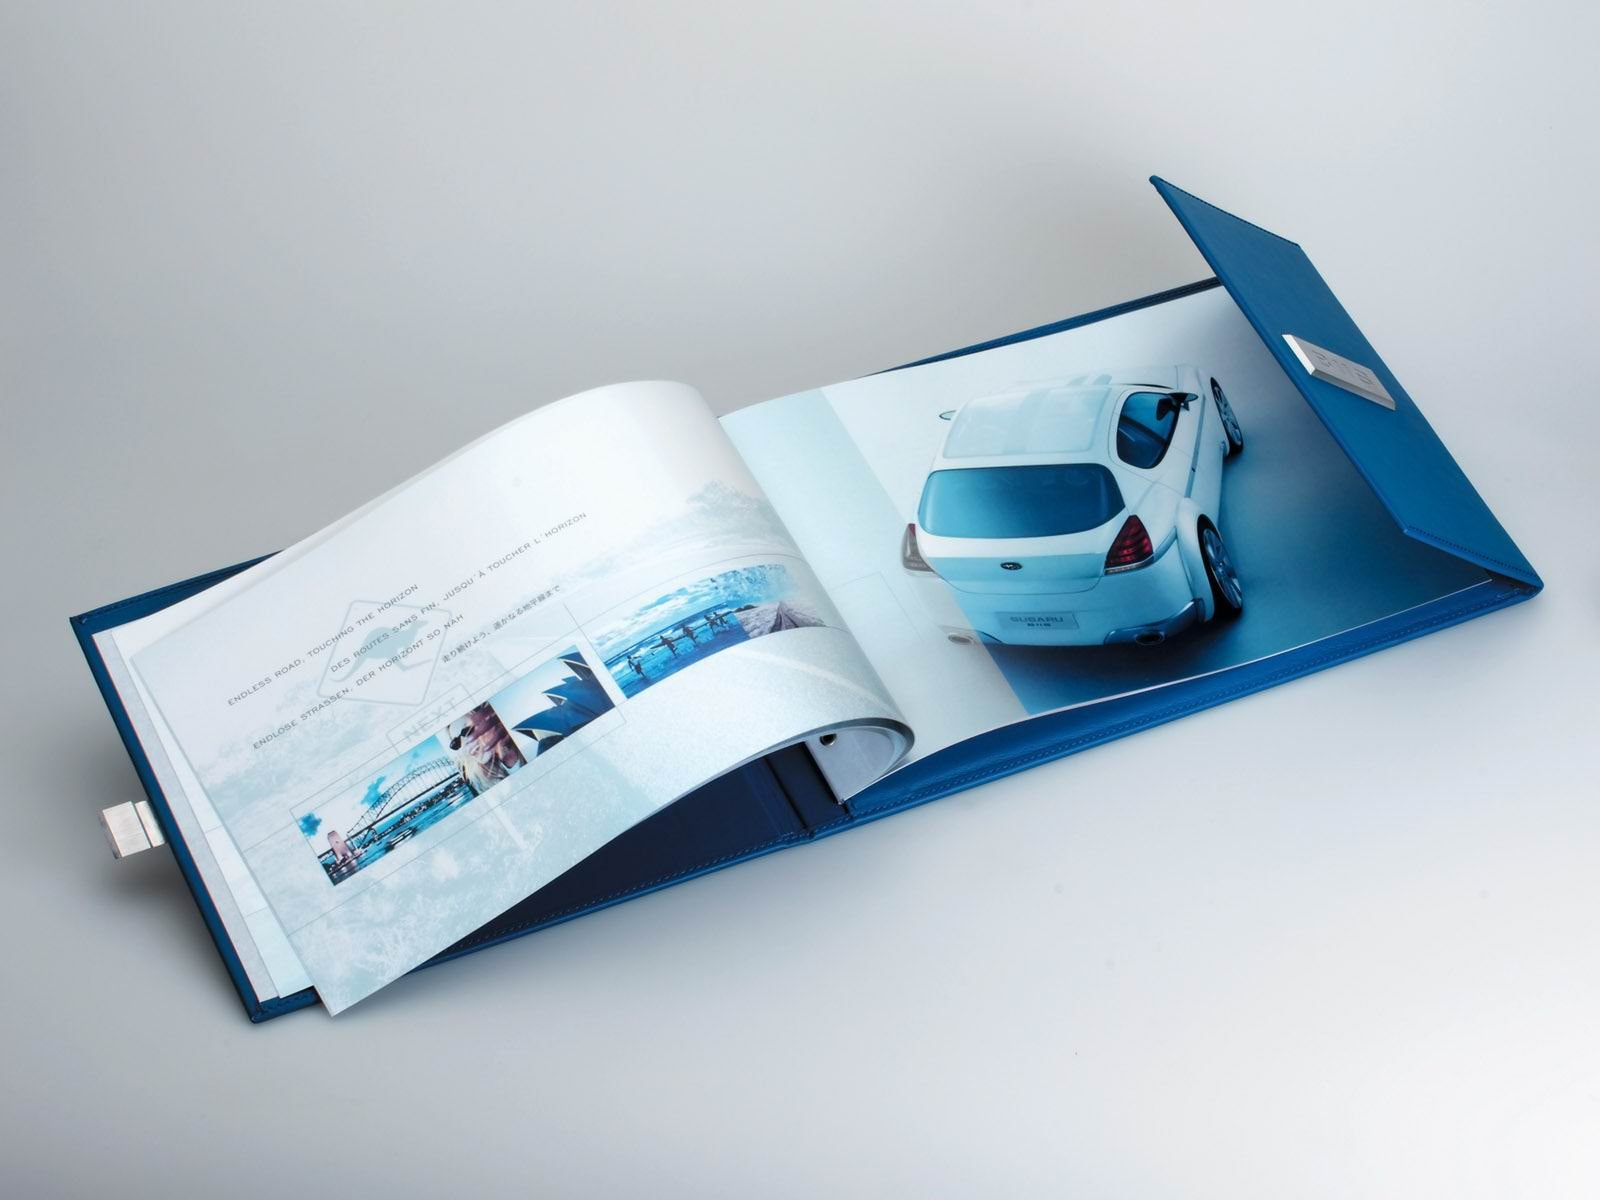 brochure design tools - printed brochures are still an effective marketing tool in